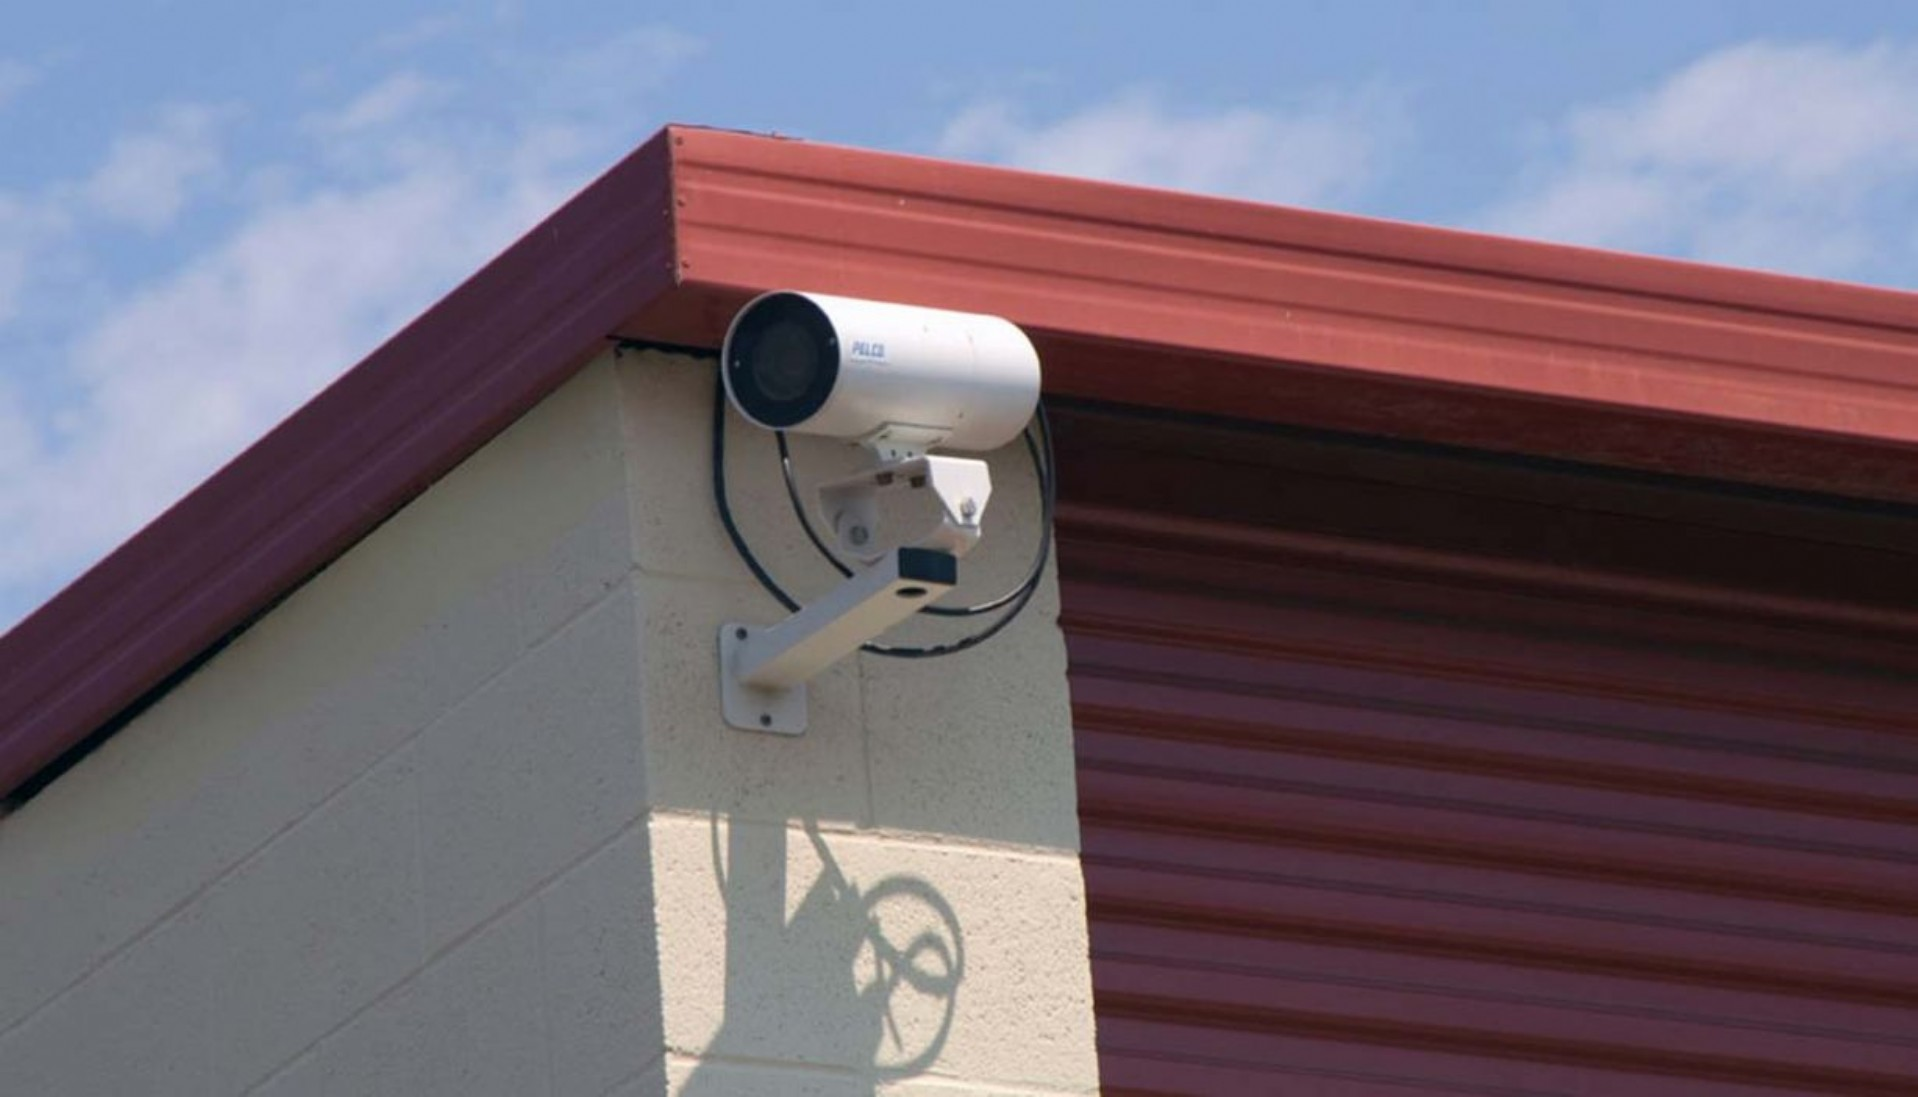 Video security camera mounted on the corner of a building